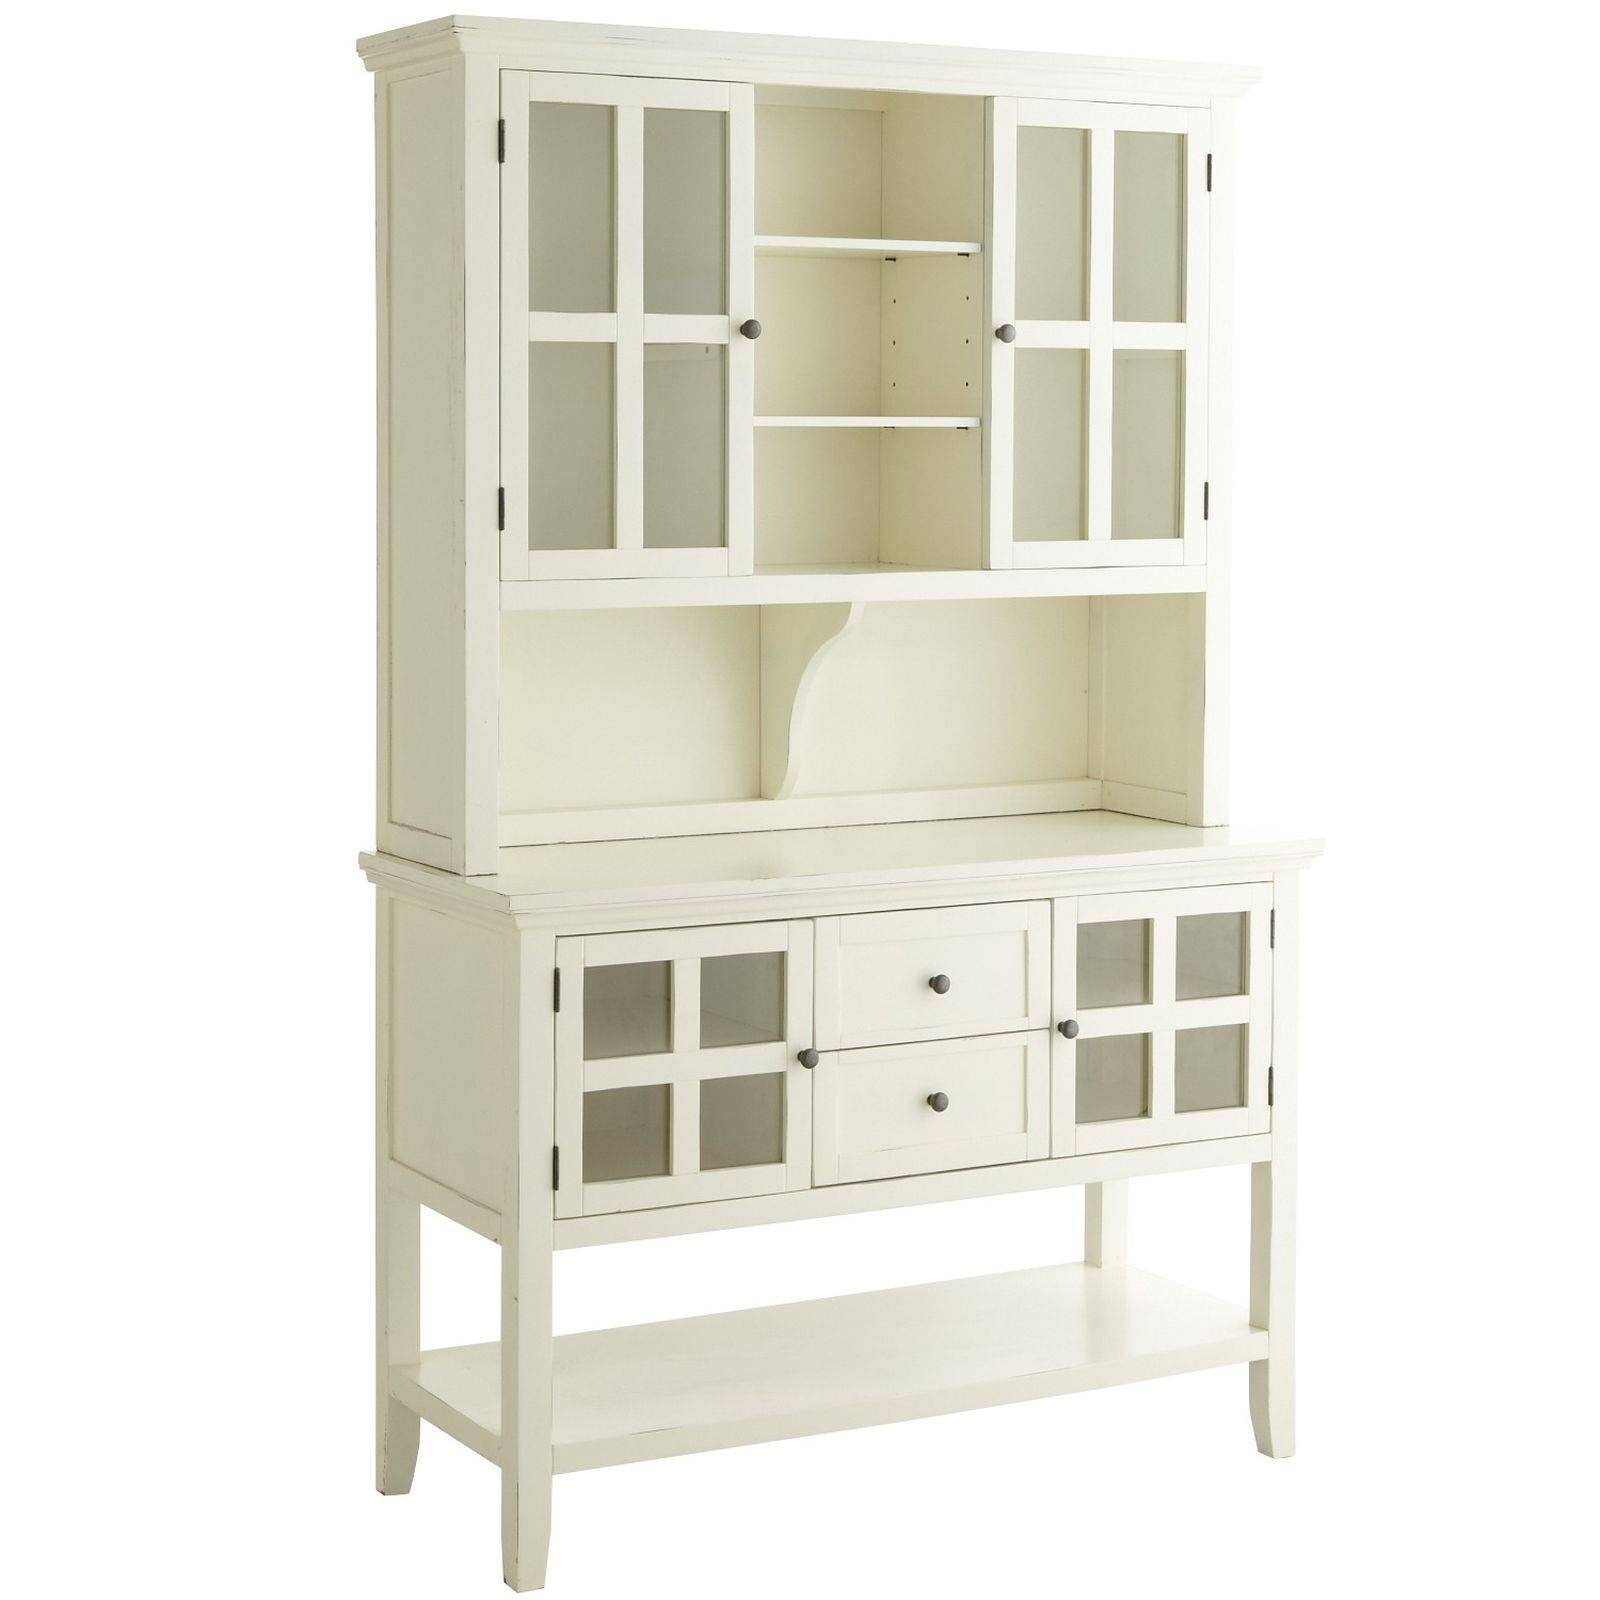 Sideboards: Glamorous Small Buffet Hutch Small Hutch Cabinet in Small White Sideboards (Image 24 of 30)